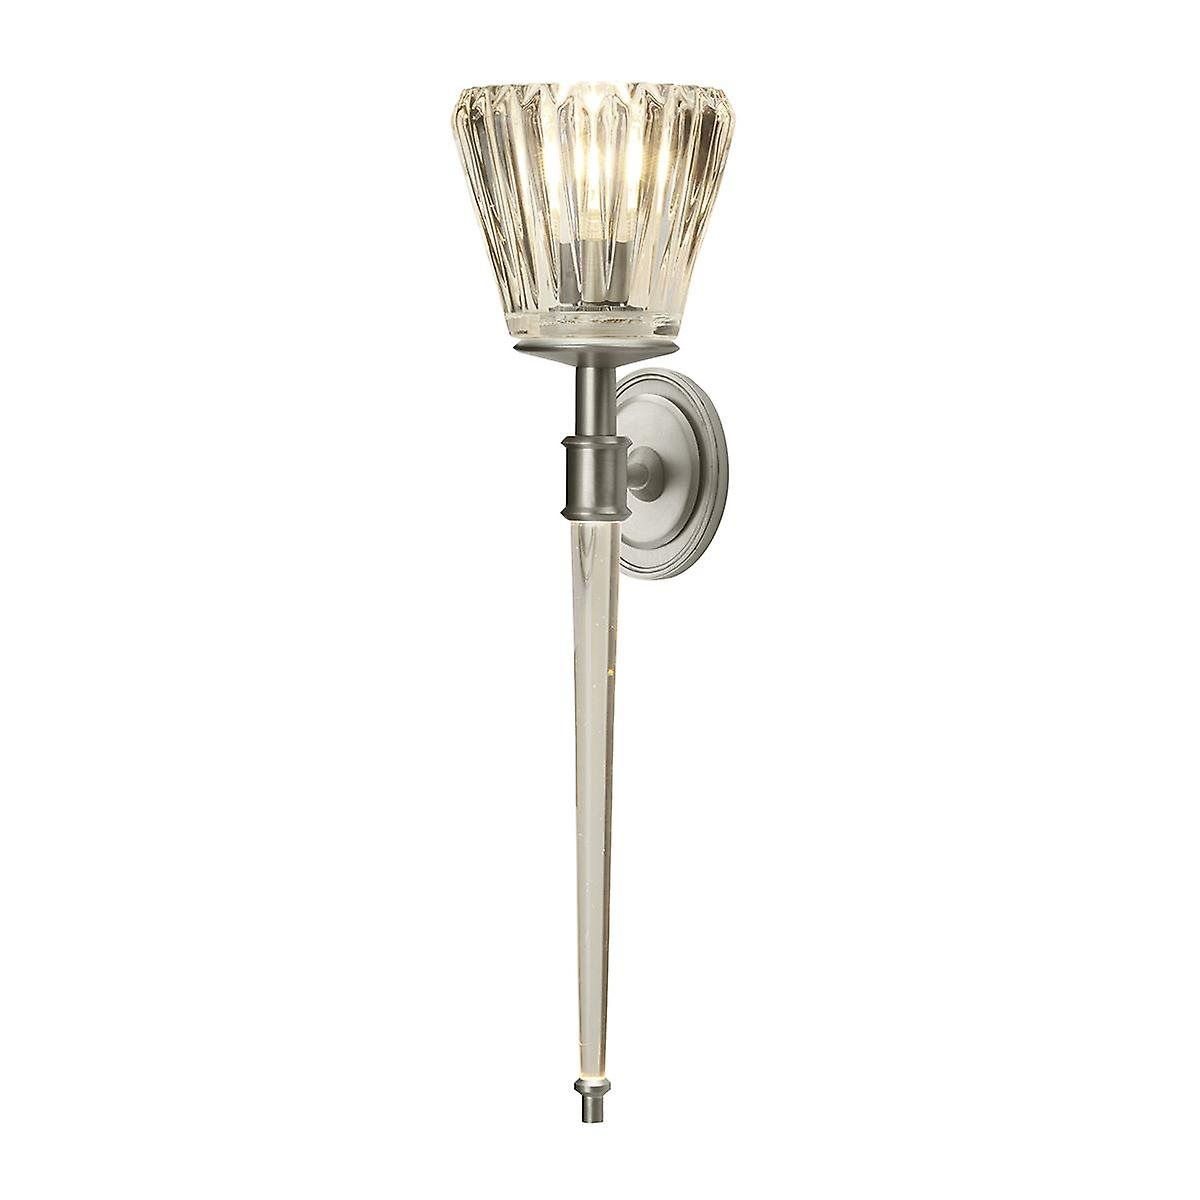 Elstead - 2 Light Wall Light - Brushed Nickel - BATH AGATHA BN